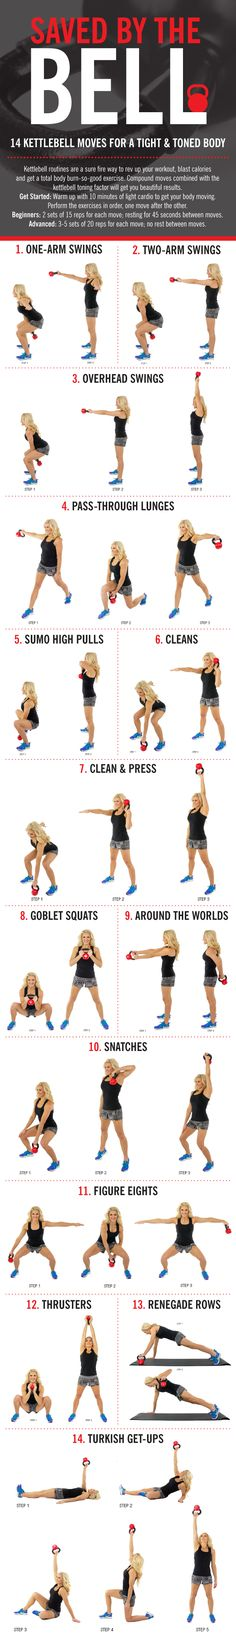 14 Kettlebell Moves for an All-over Body Calorie Torcher | Skinny Mom | Where Moms Get The Skinny On Healthy Living Click on Visit Site To Find Out More